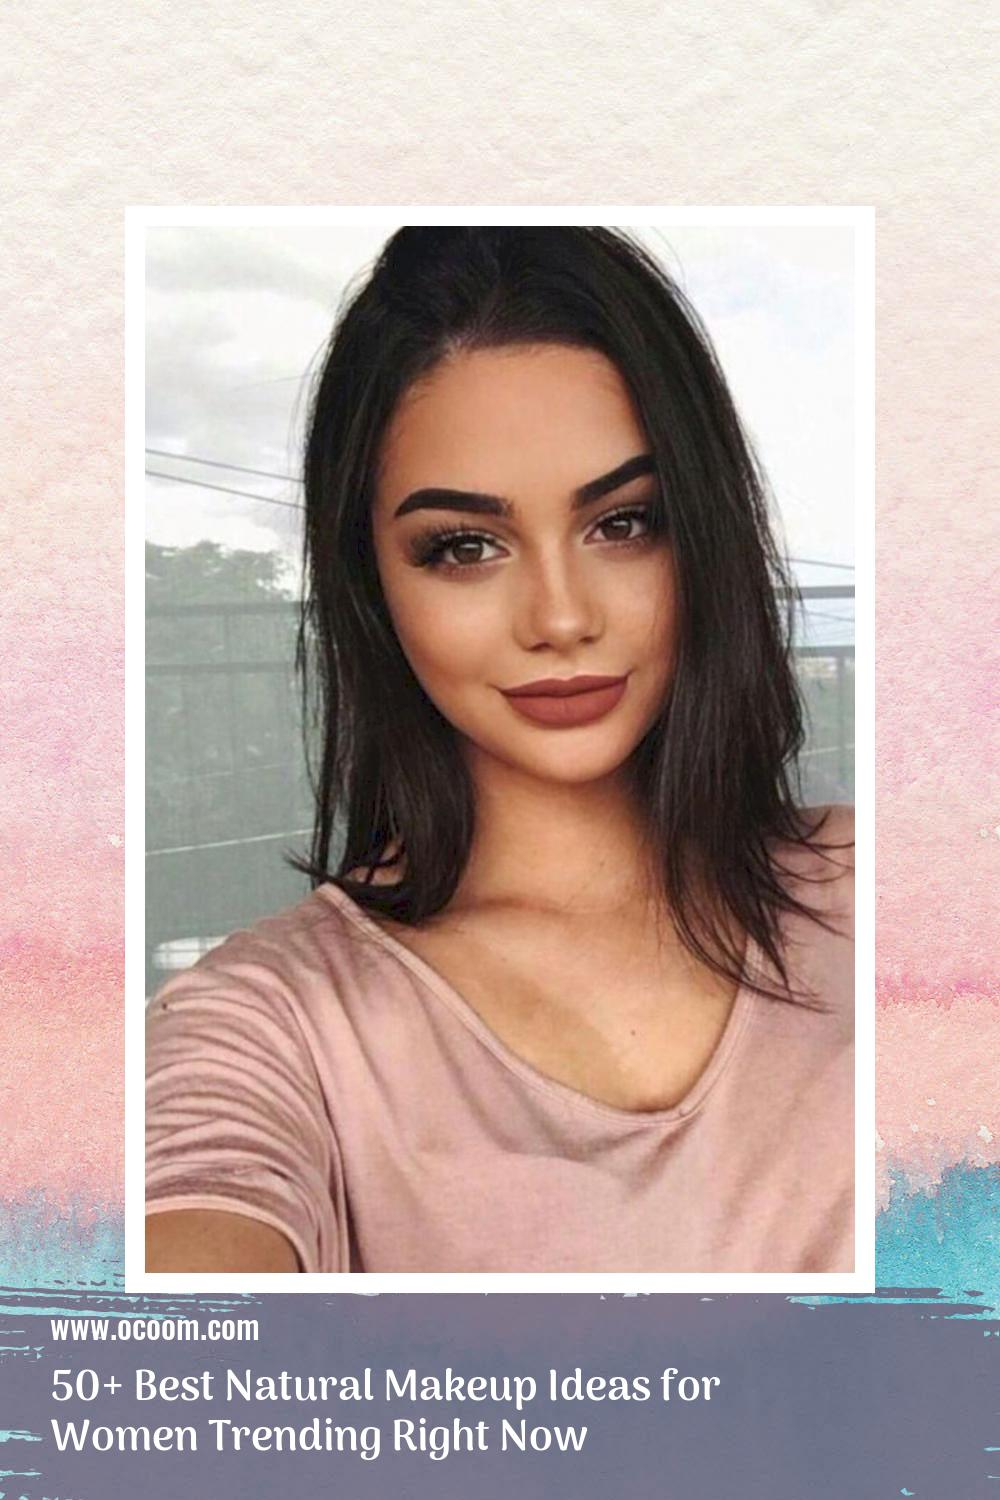 50+ Best Natural Makeup Ideas for Women Trending Right Now 21